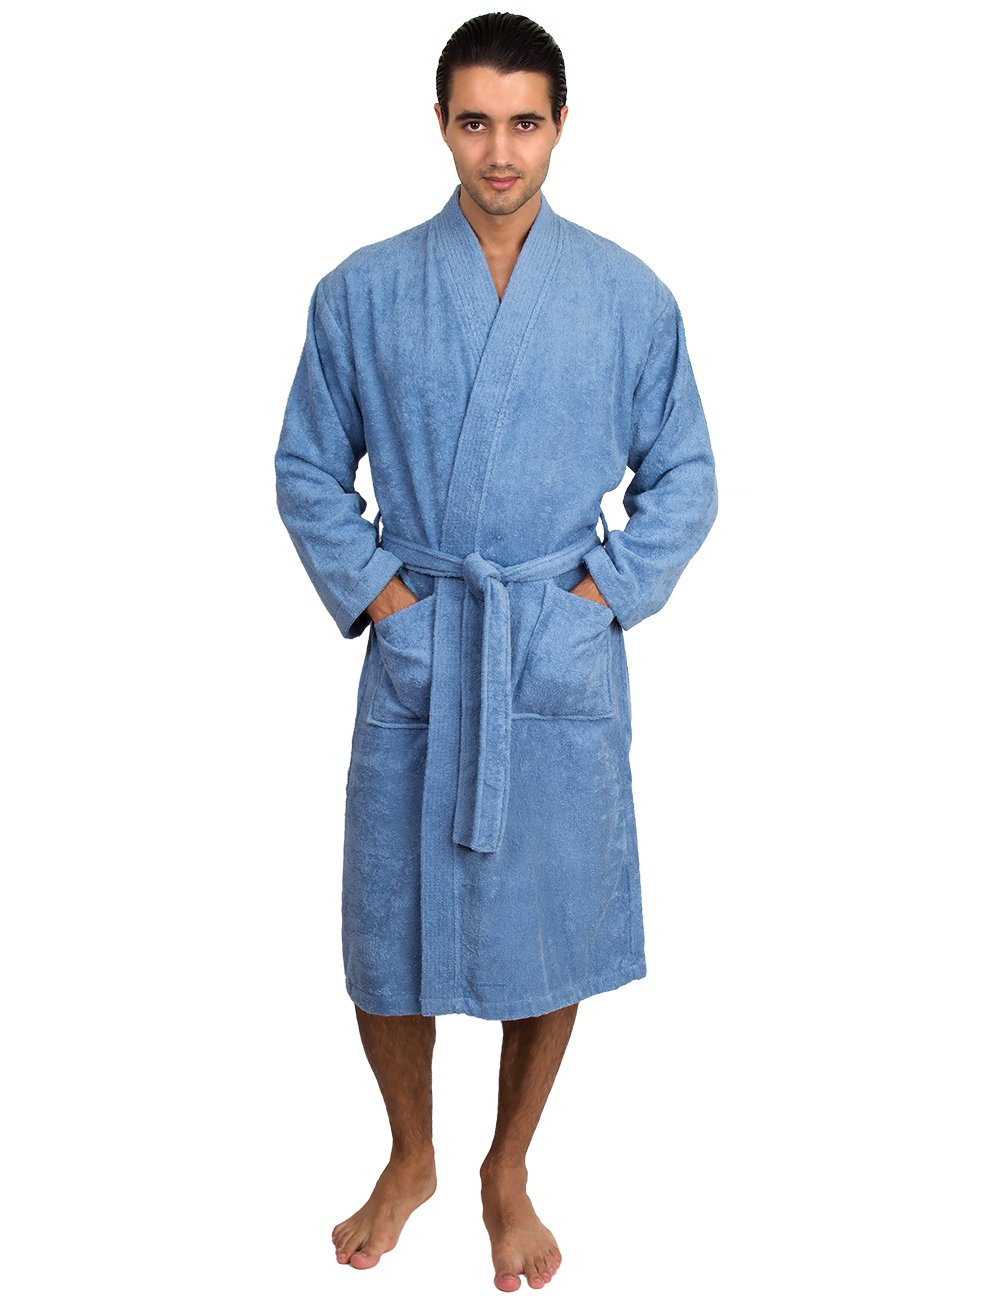 best rated in men 39 s bathrobes helpful customer reviews. Black Bedroom Furniture Sets. Home Design Ideas